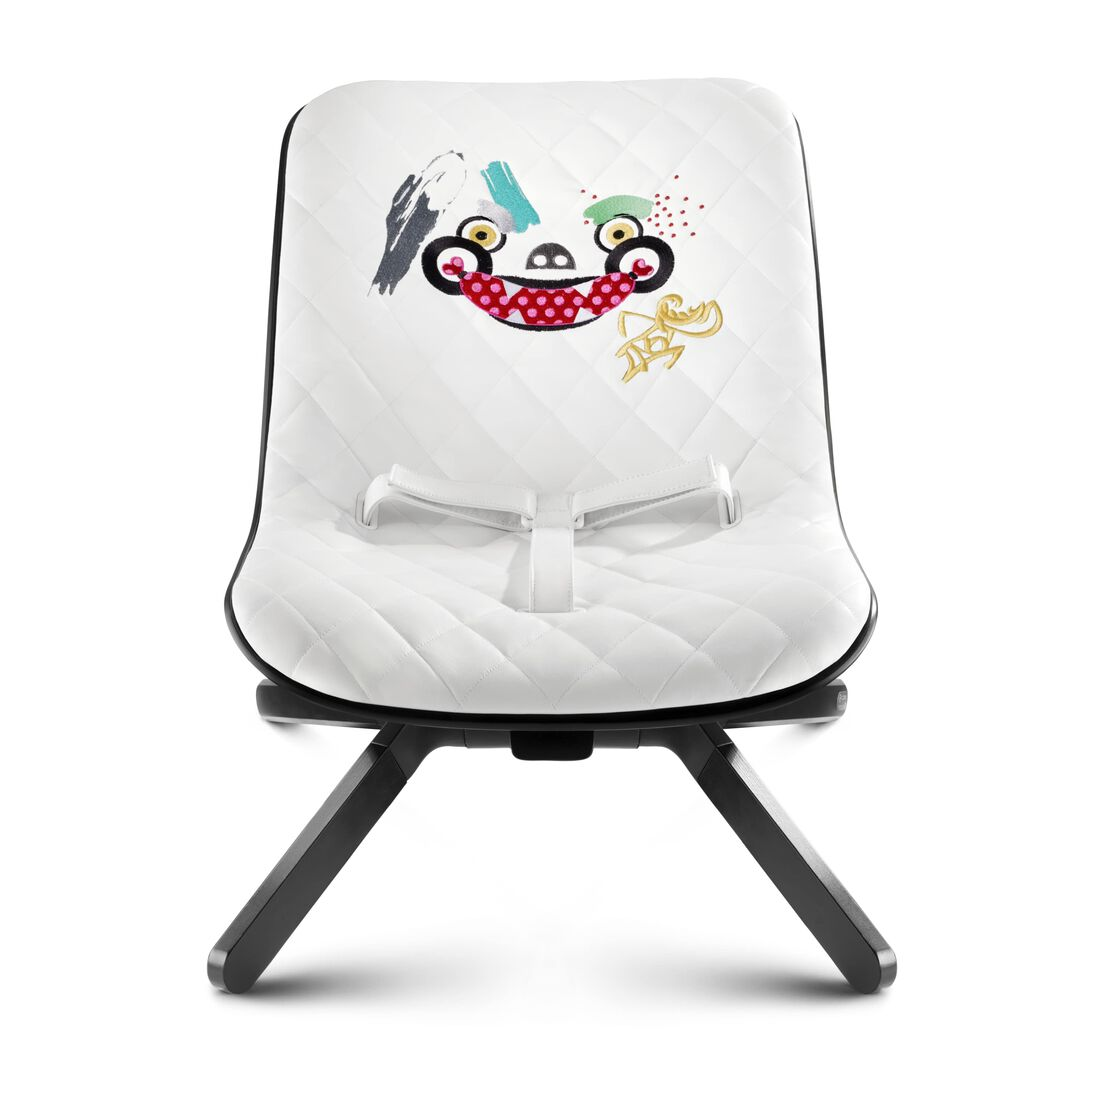 CYBEX LEMO Highchair Interior Collection